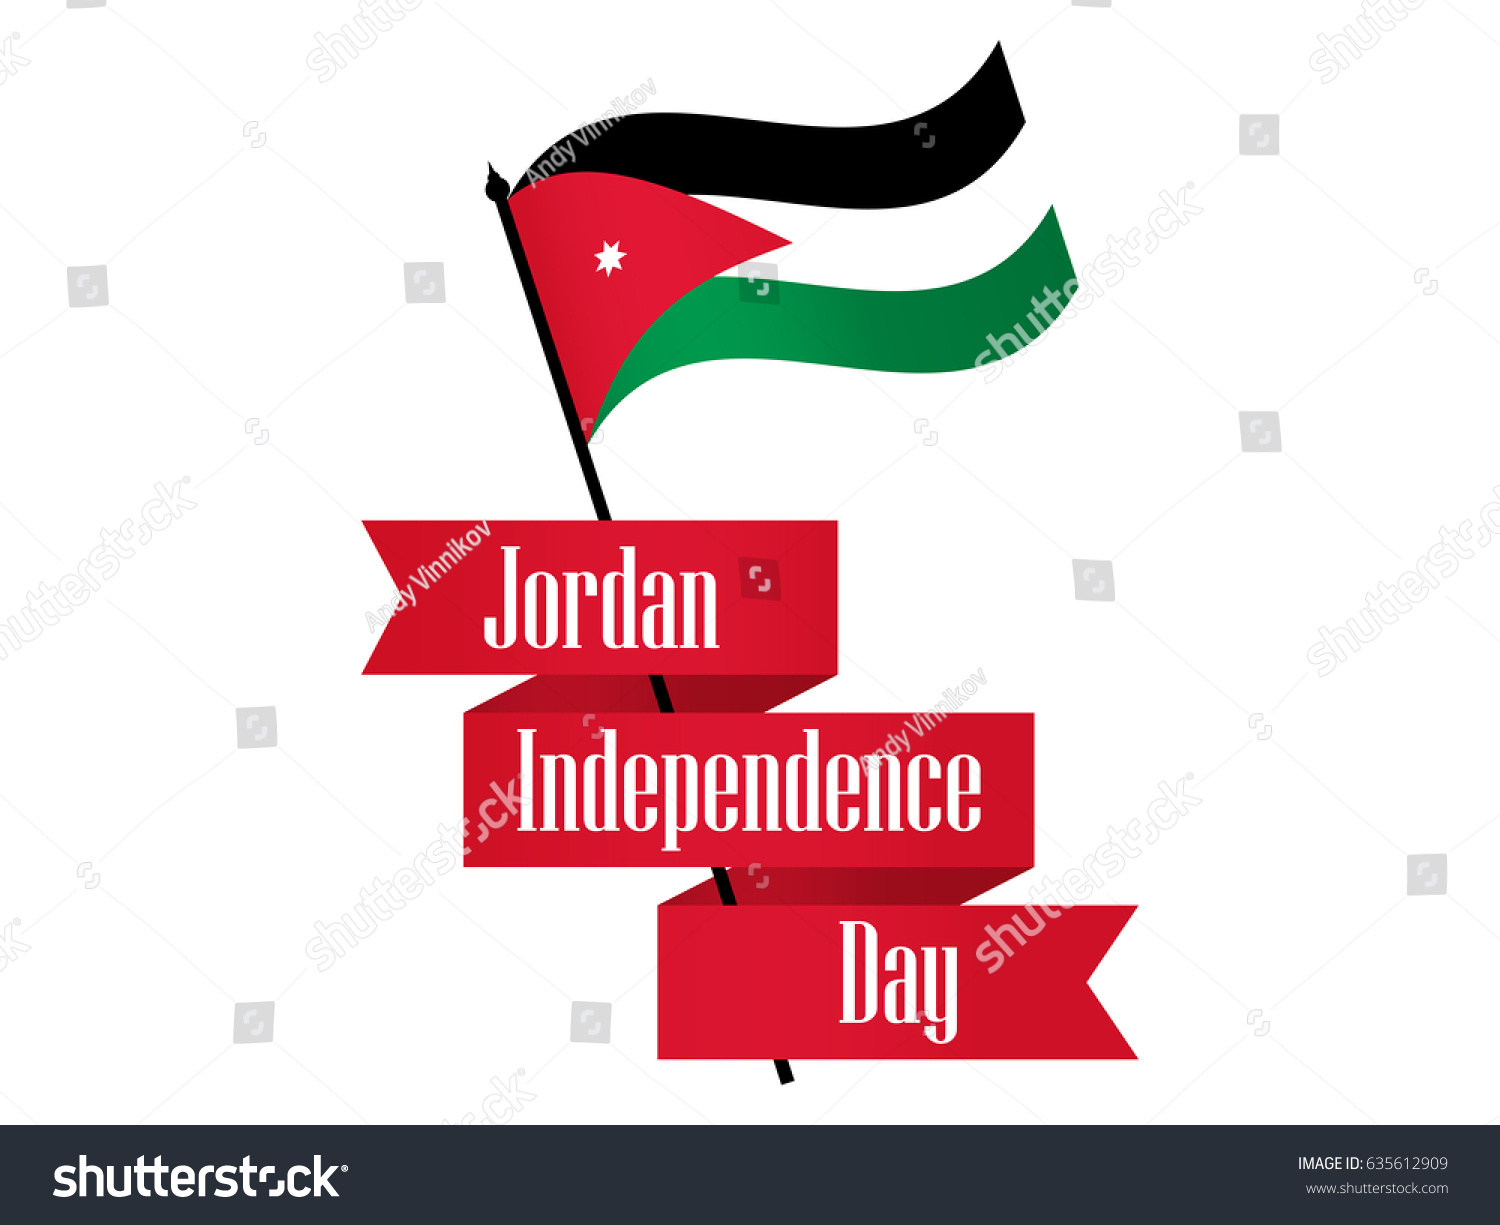 Jordan independence day ribbon jordan flag stock vector 635612909 jordan independence day ribbon and jordan flag celebration banner vector illustration biocorpaavc Gallery